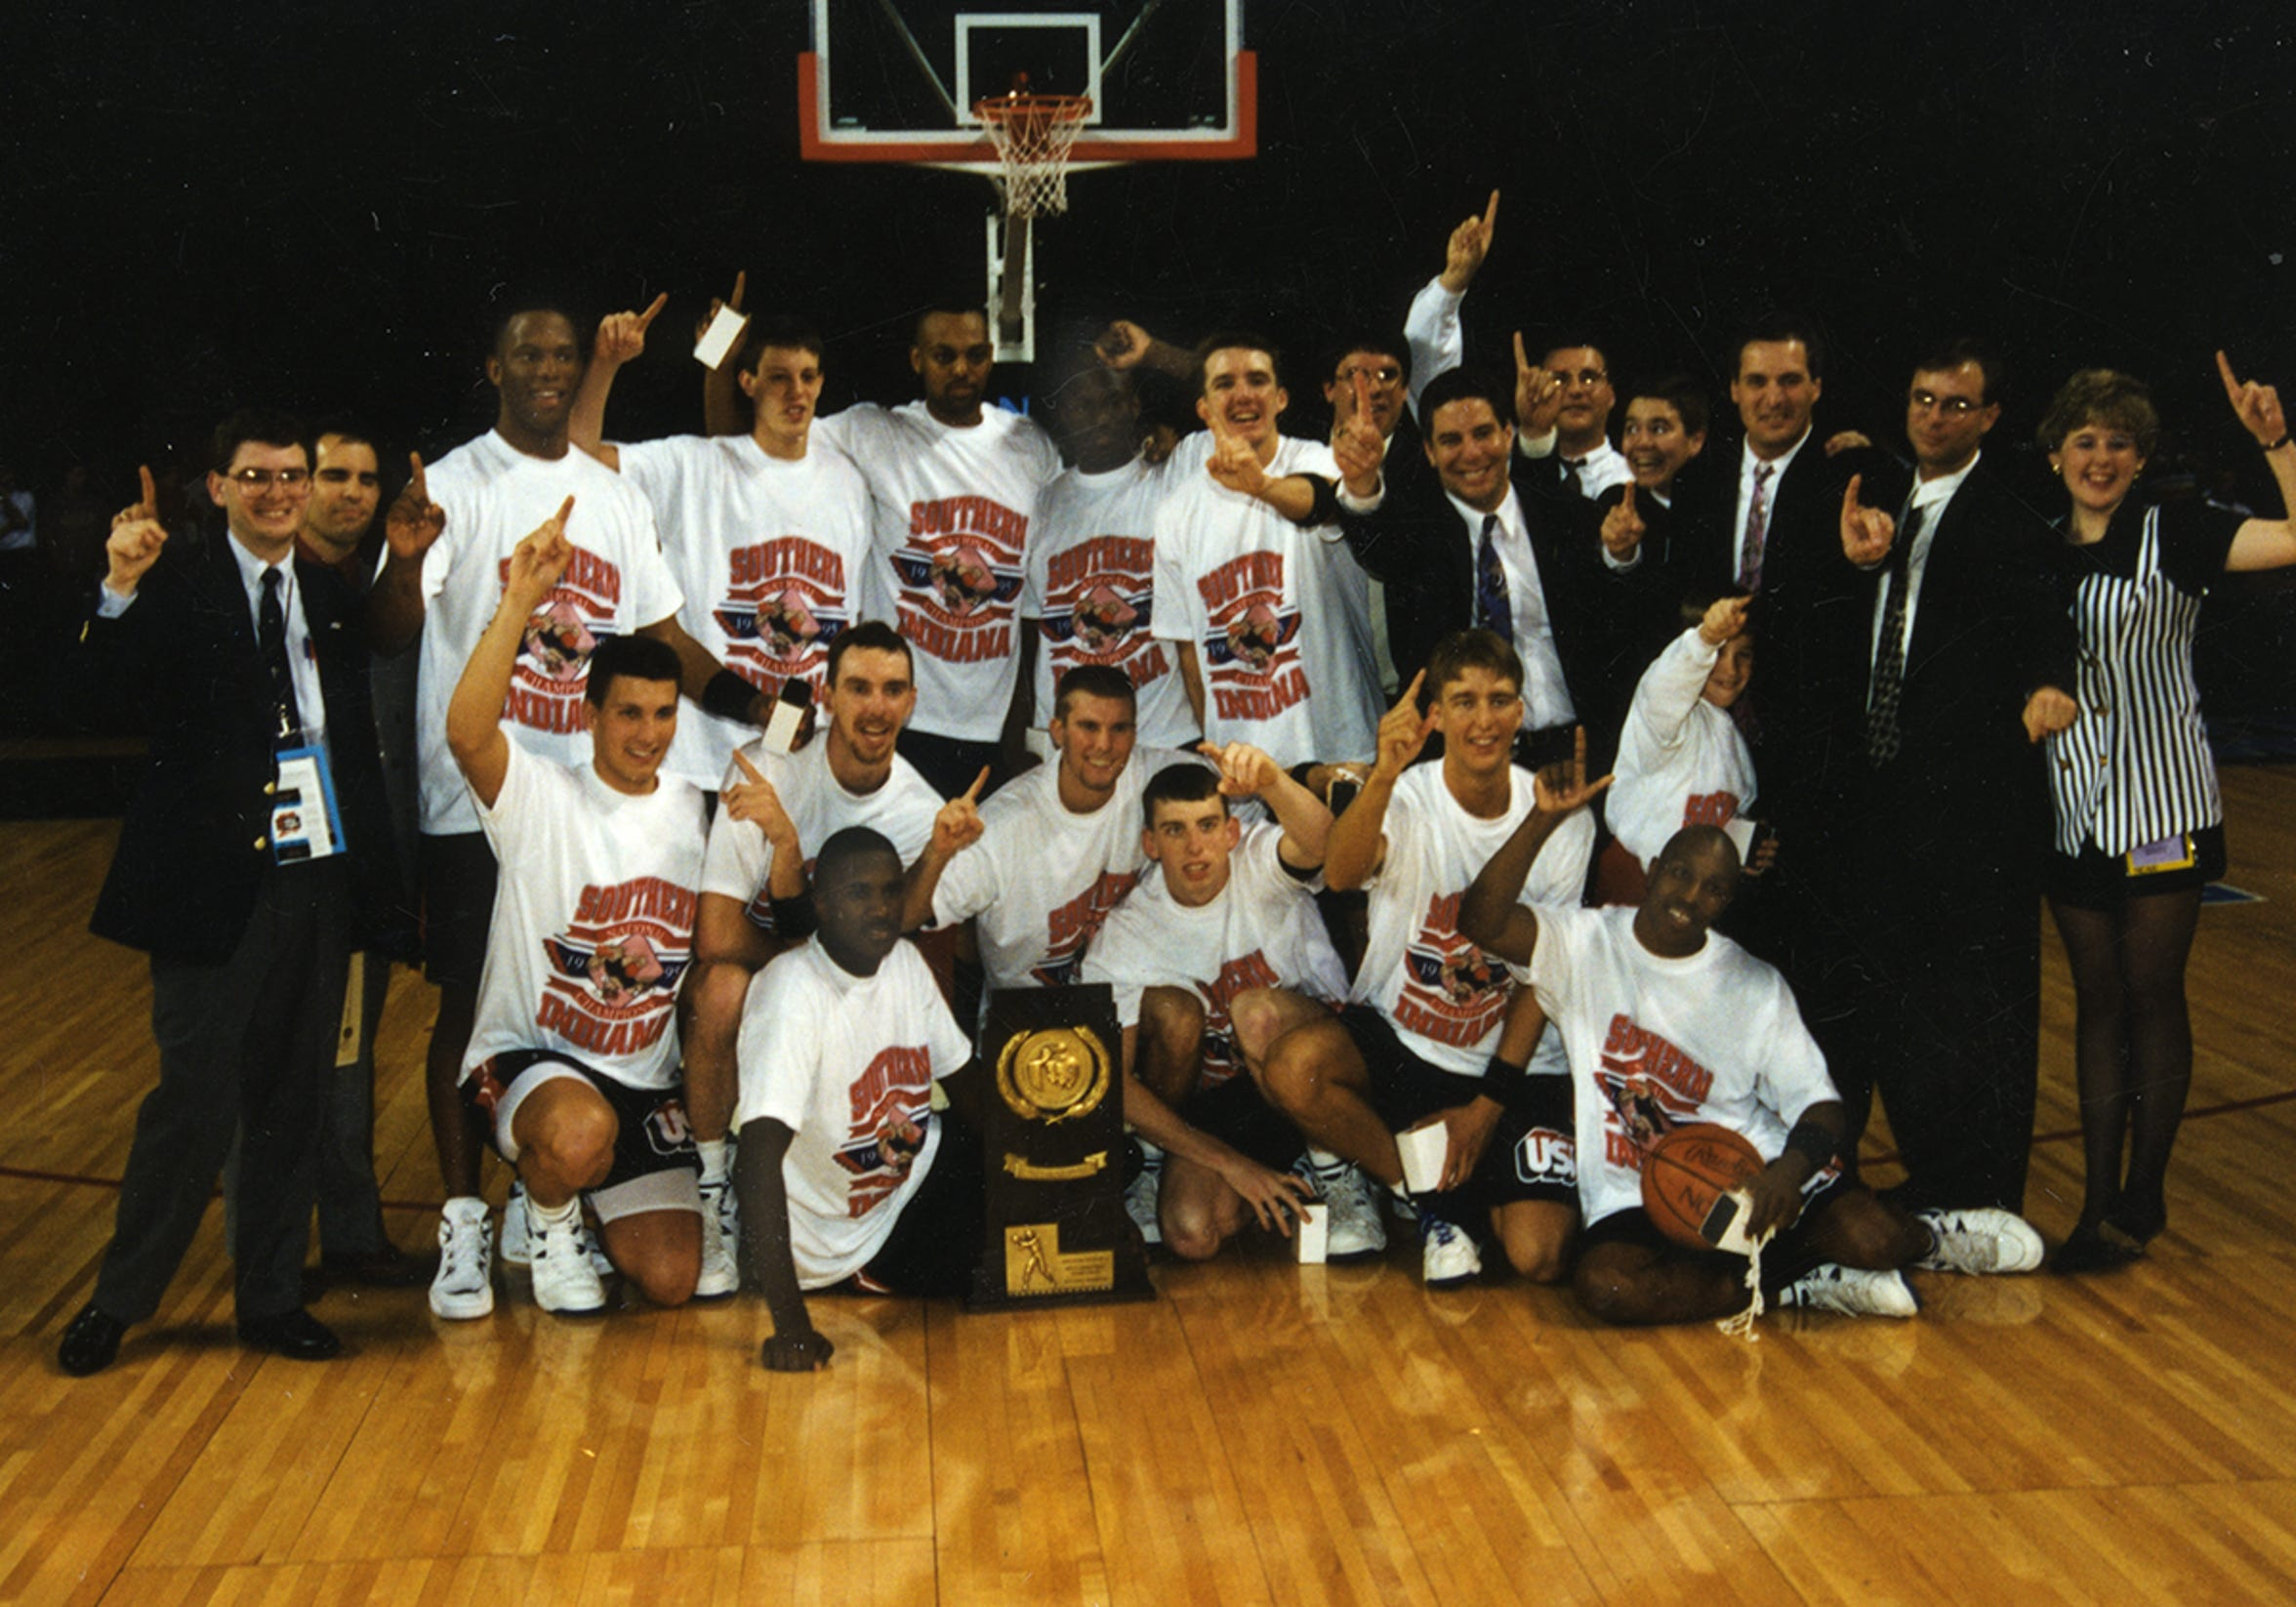 USI's 1995 National Championship team